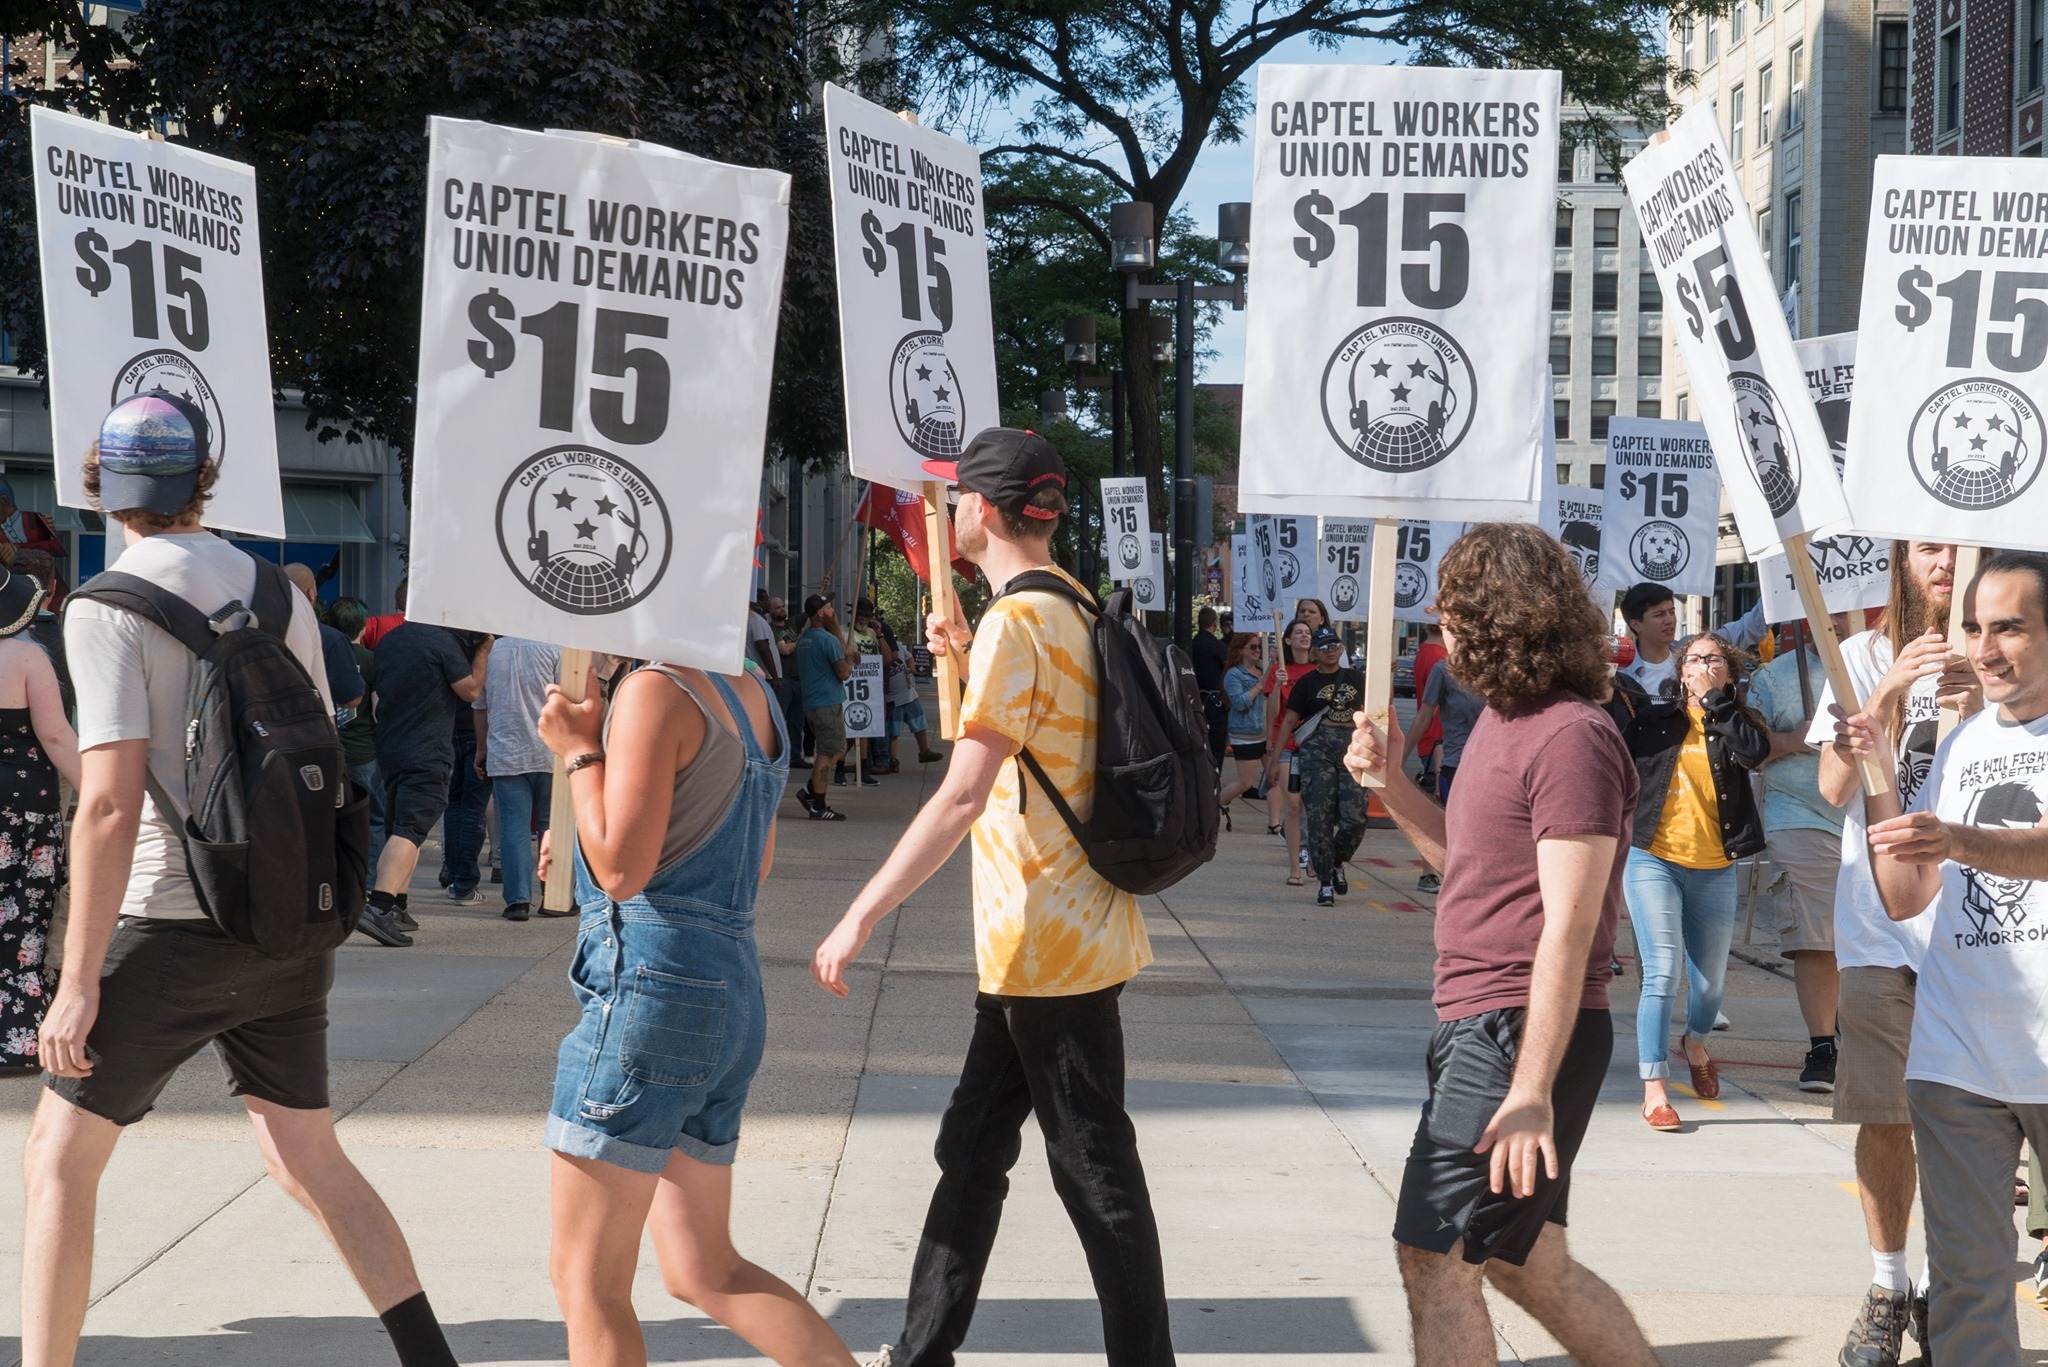 Overburdened by the COVID-19 crisis, call center workers take action (UPDATED)